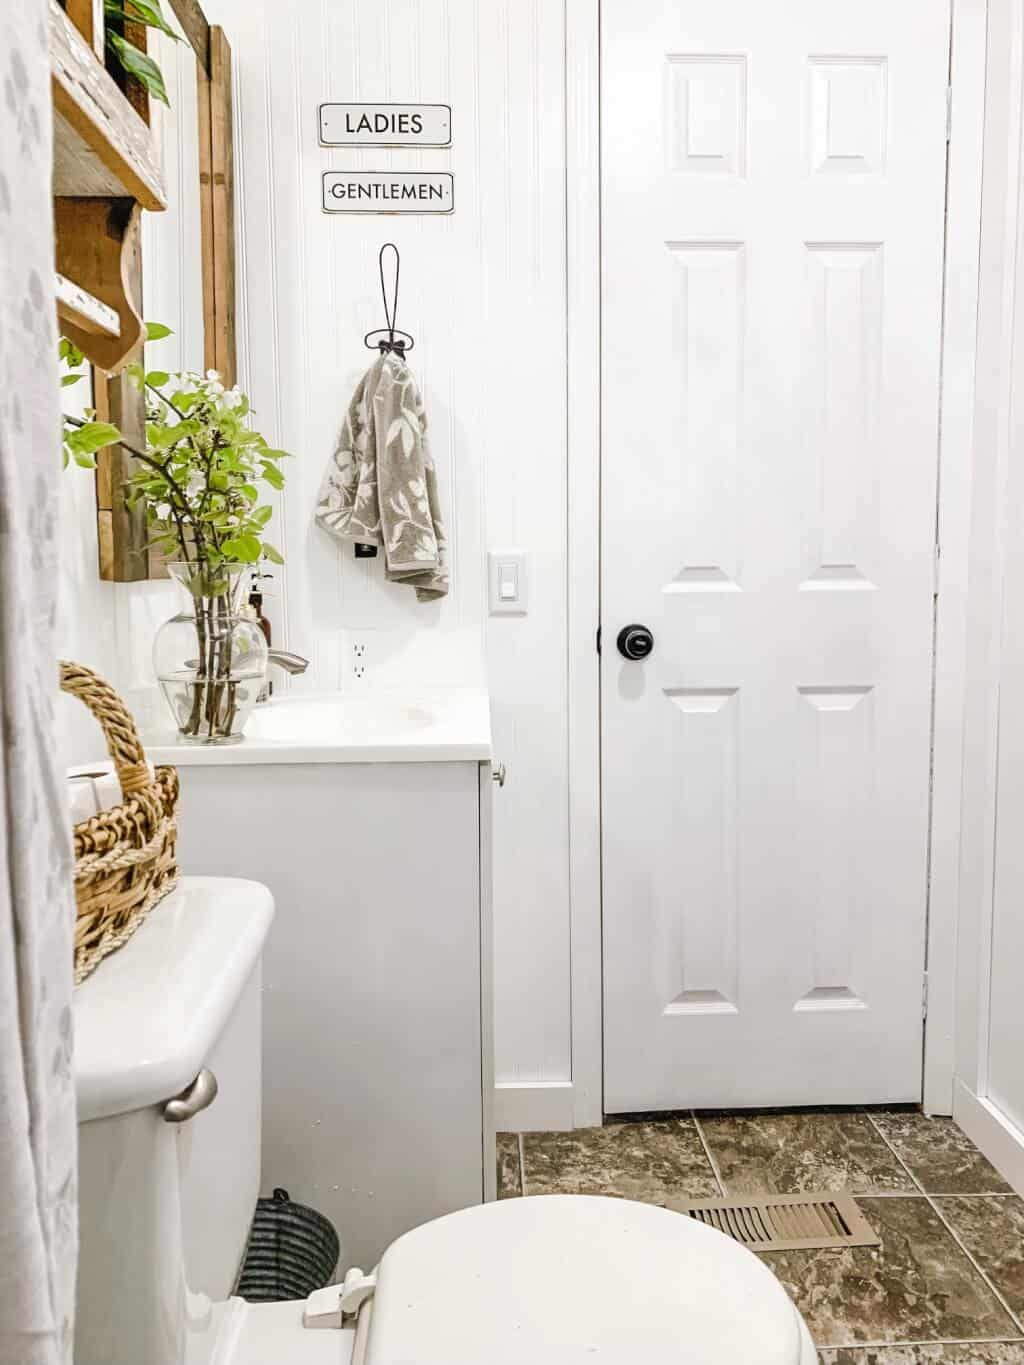 Left Door View for mobile home bathroom makeover